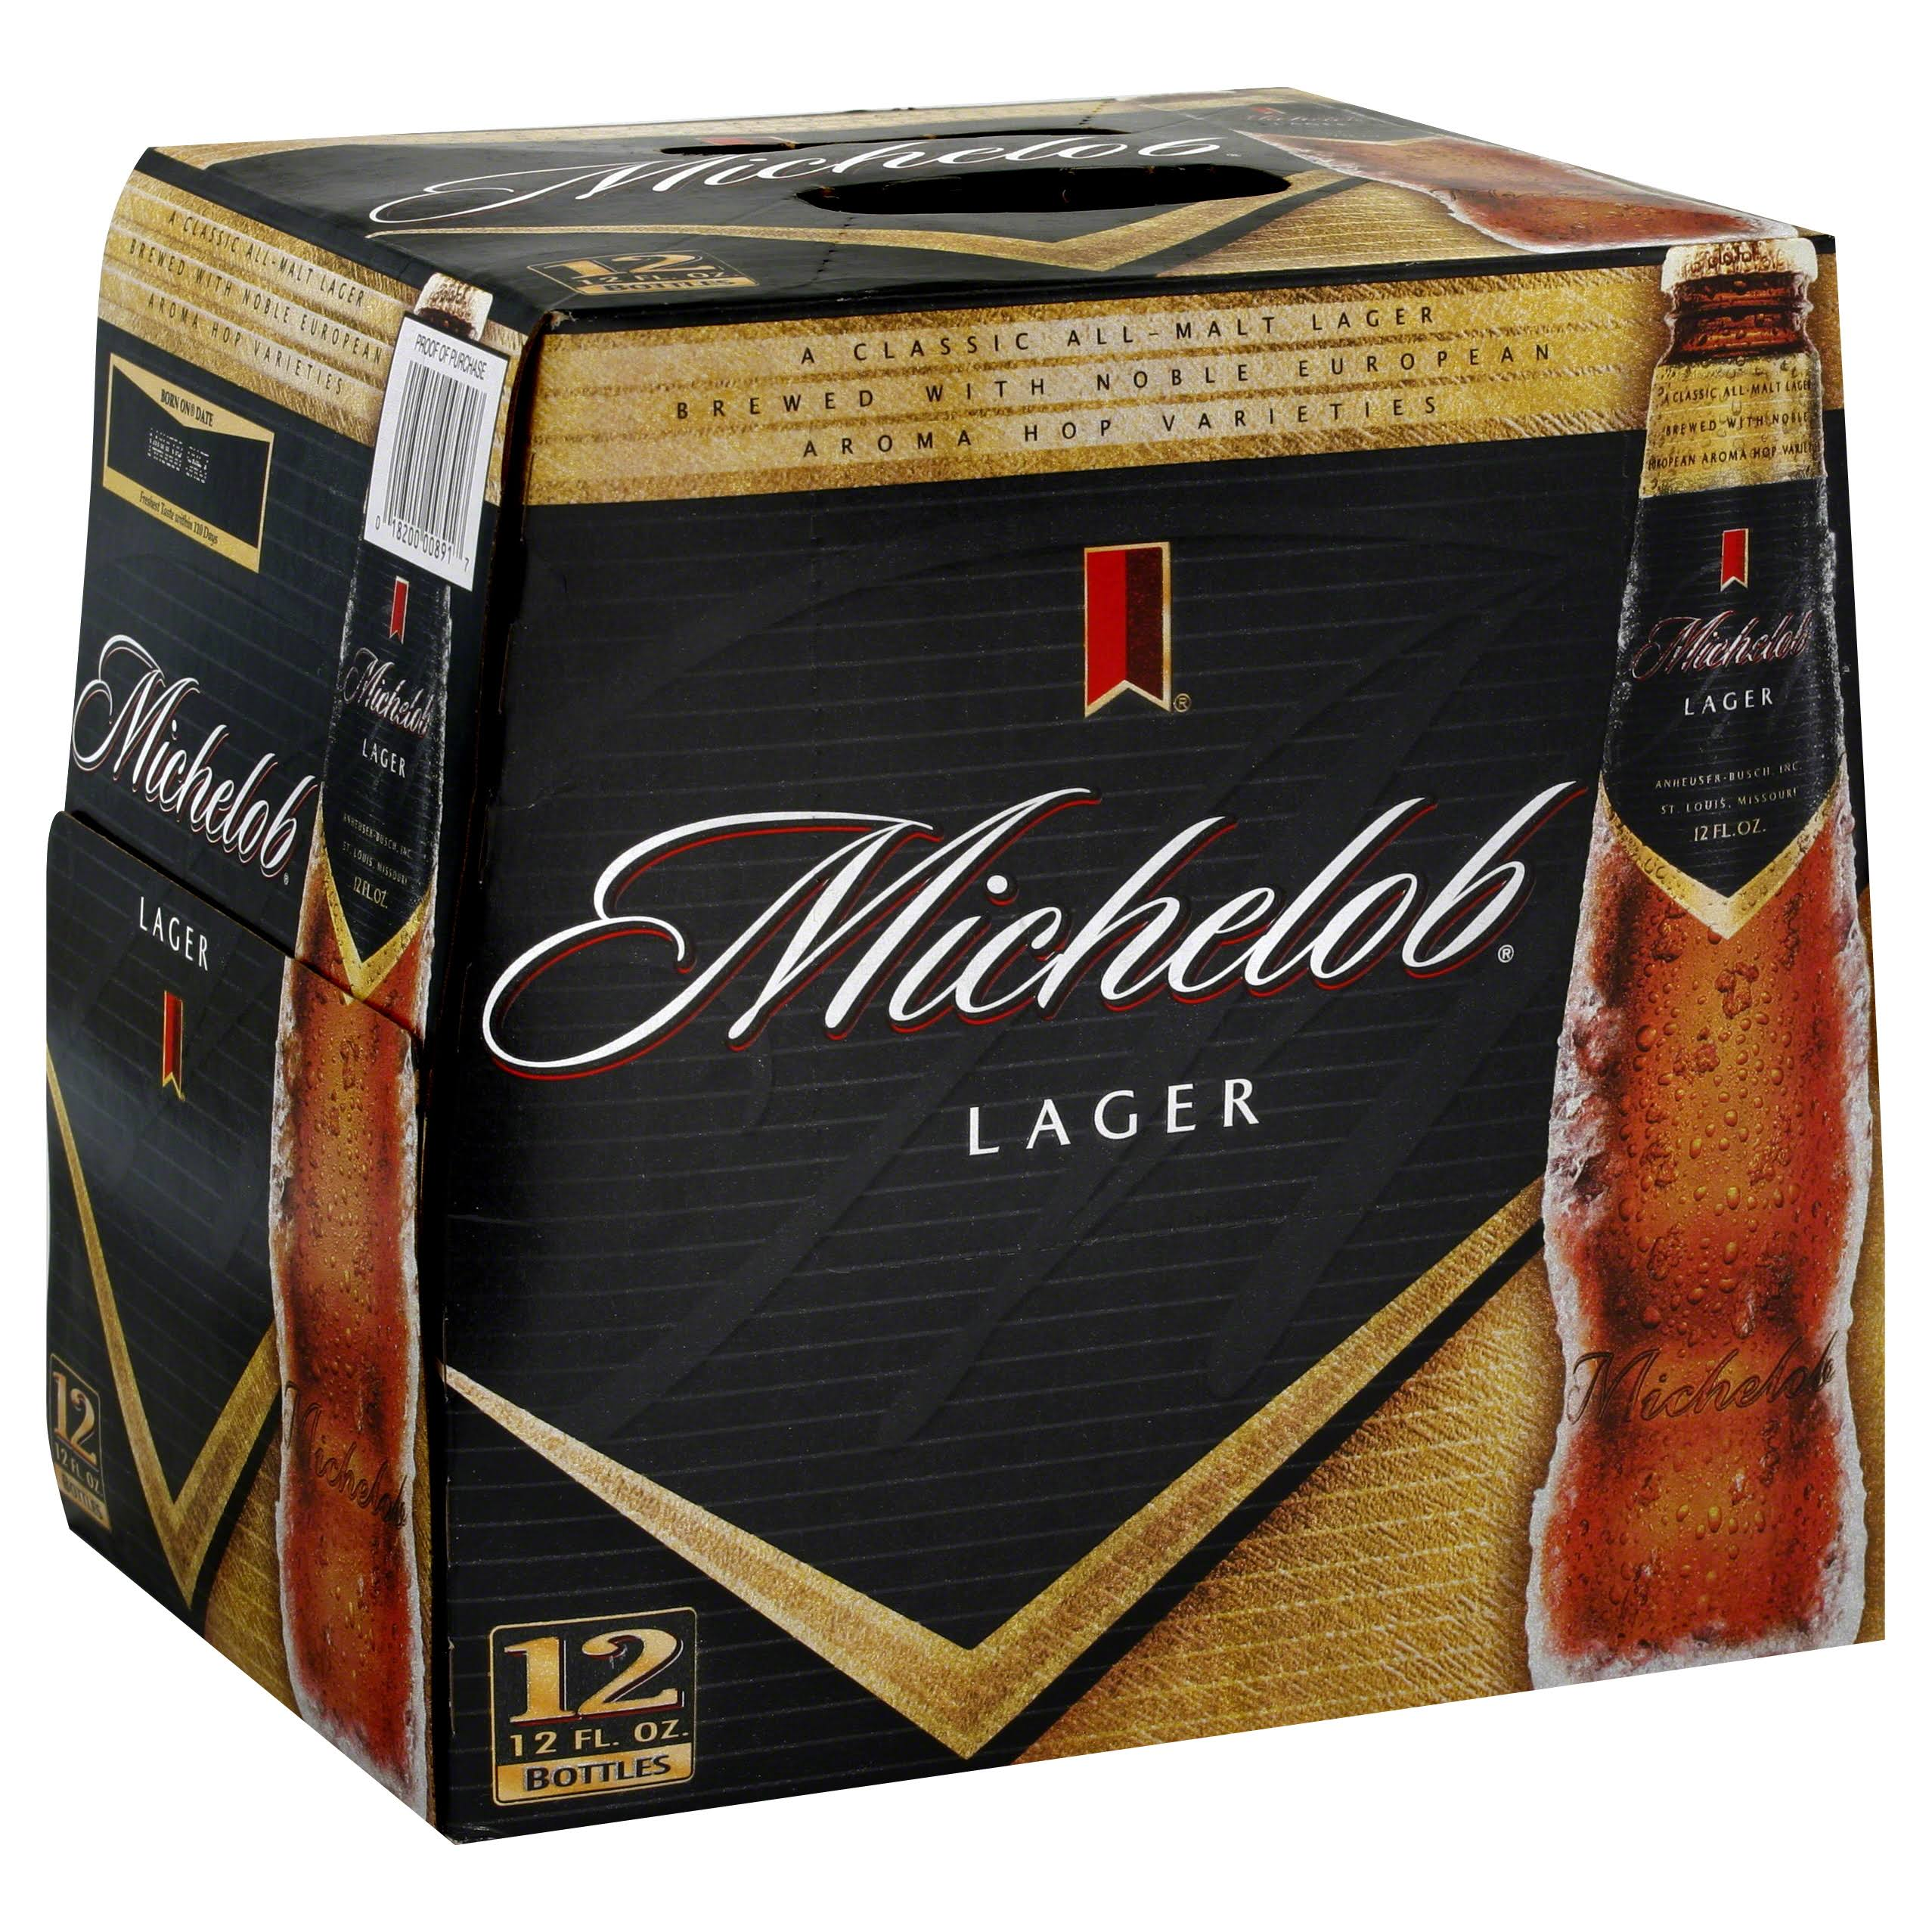 Michelob Lager - 12 Bottles